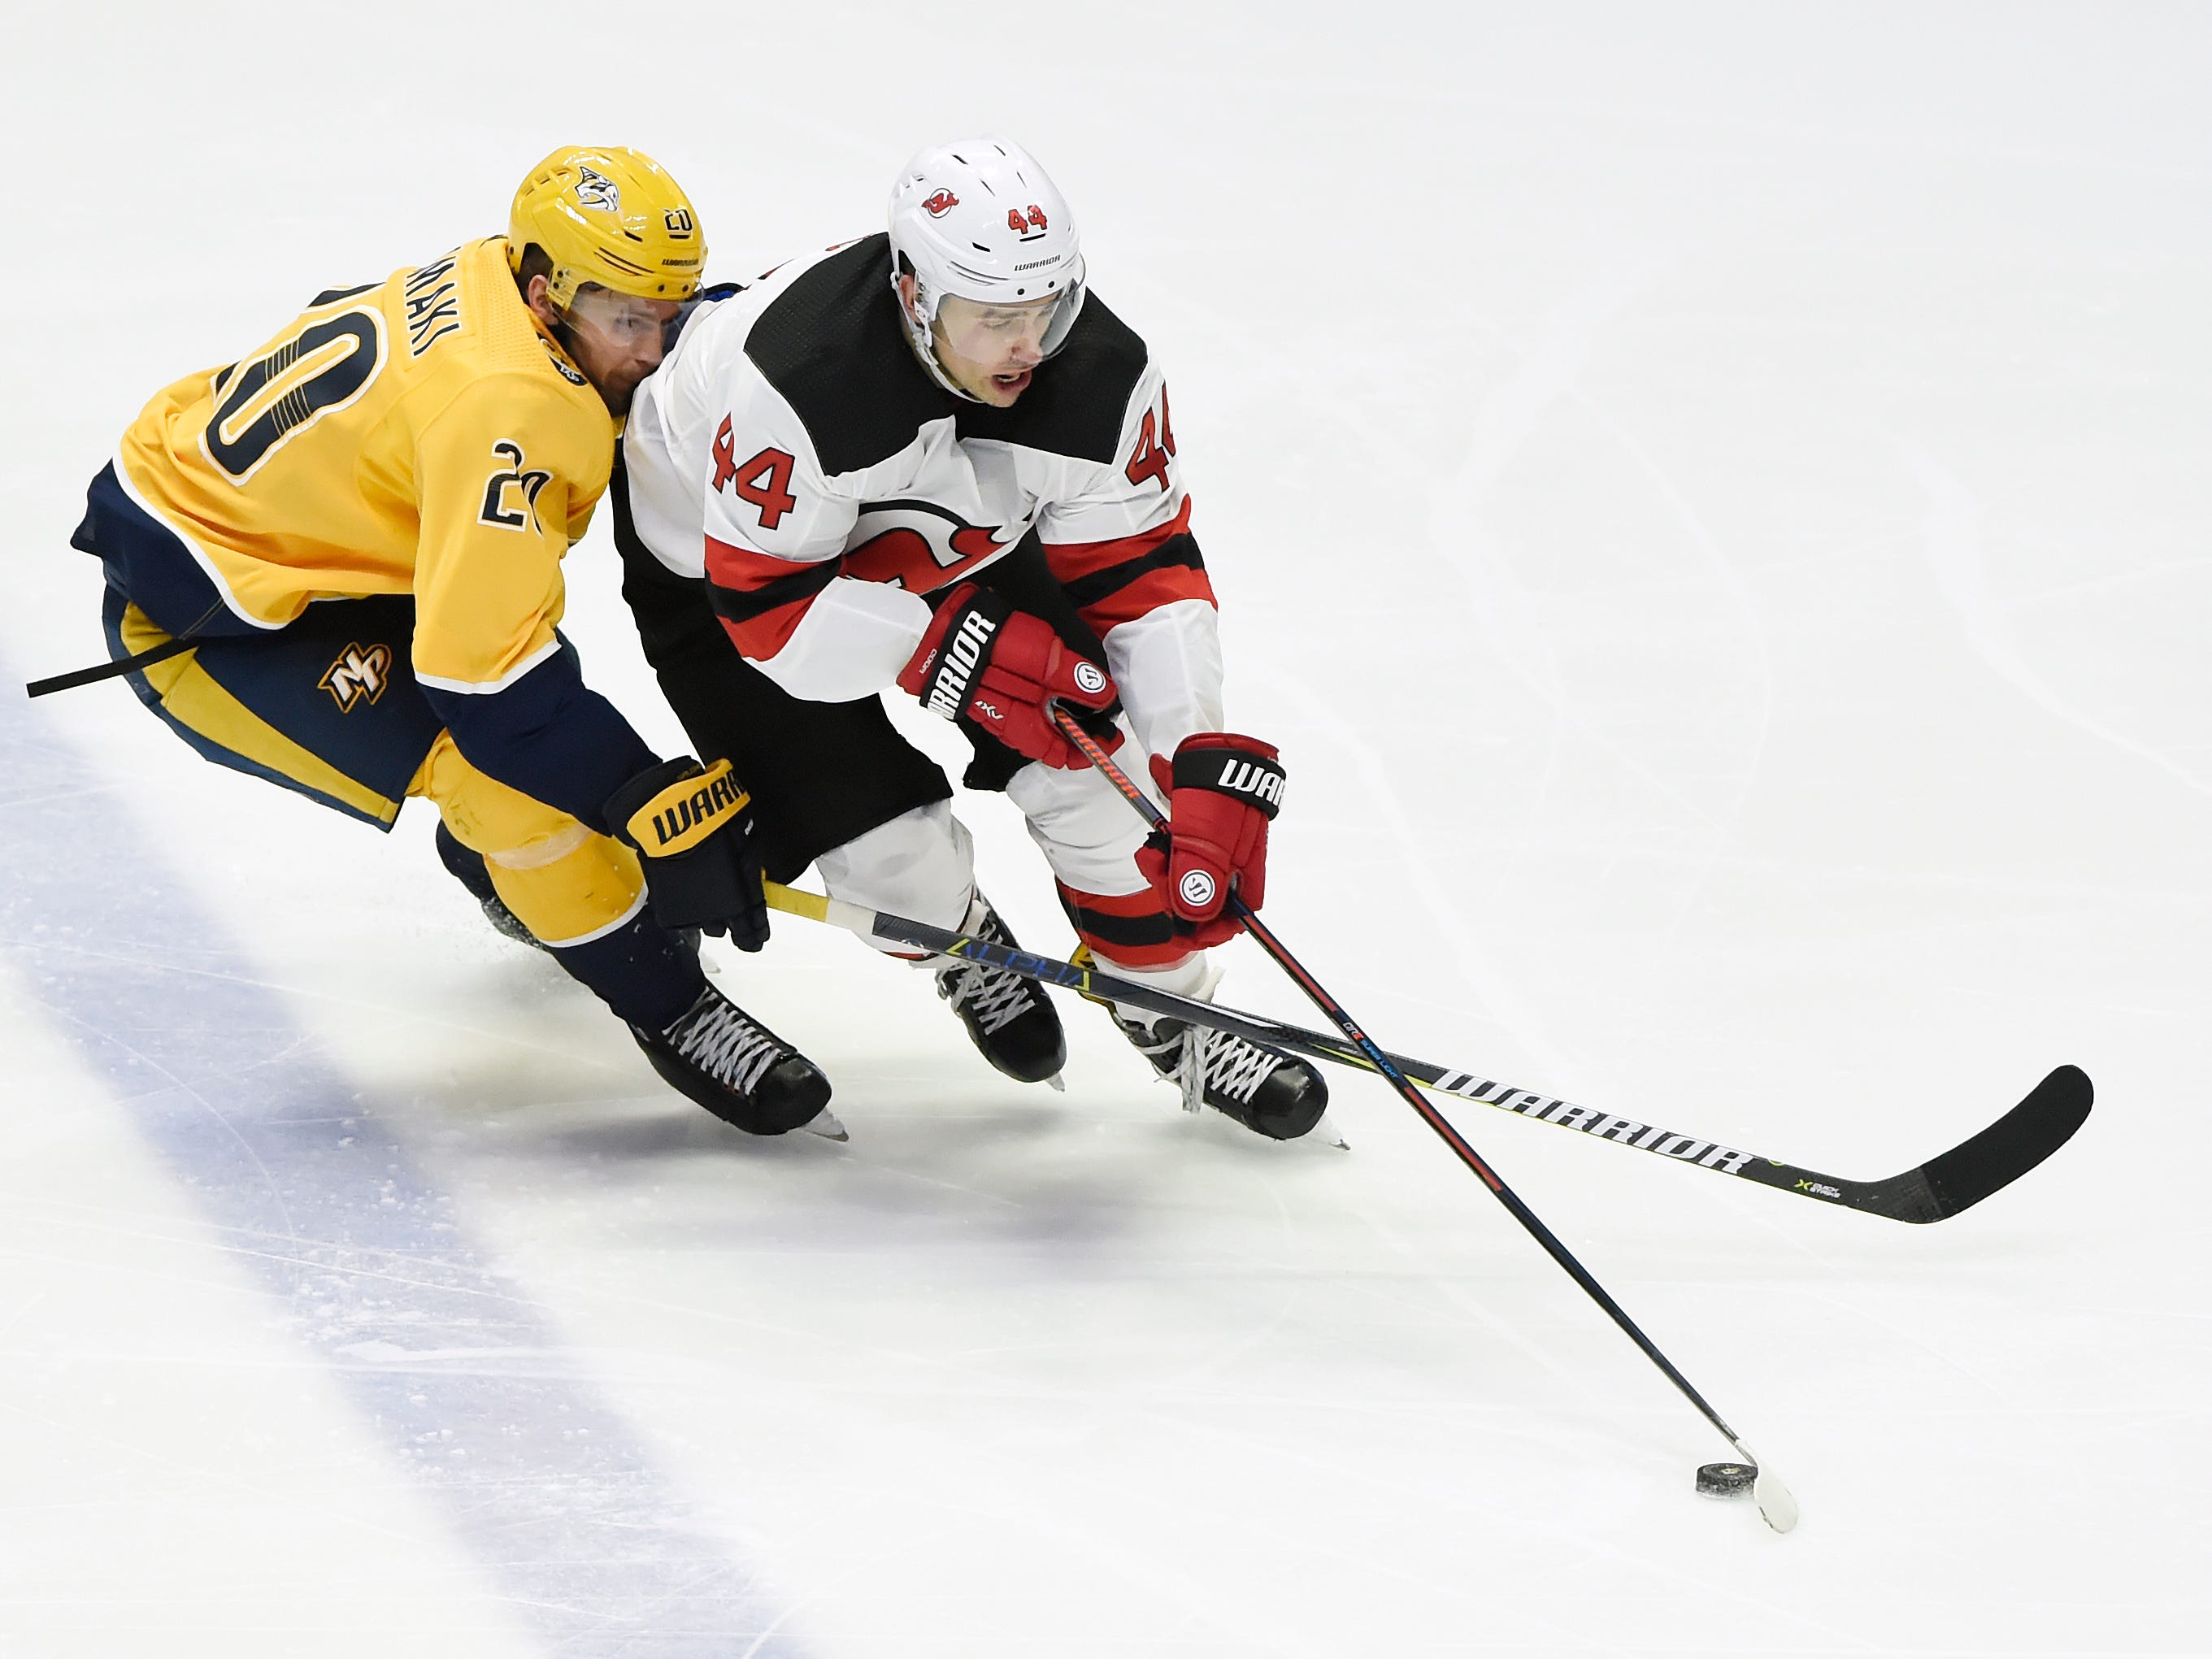 New Jersey Devils left wing Miles Wood (44) maneuvers the puck past Nashville Predators right wing Miikka Salomaki (20), during the second period of an NHL hockey game Saturday, Dec. 15, 2018, in Nashville, Tenn.